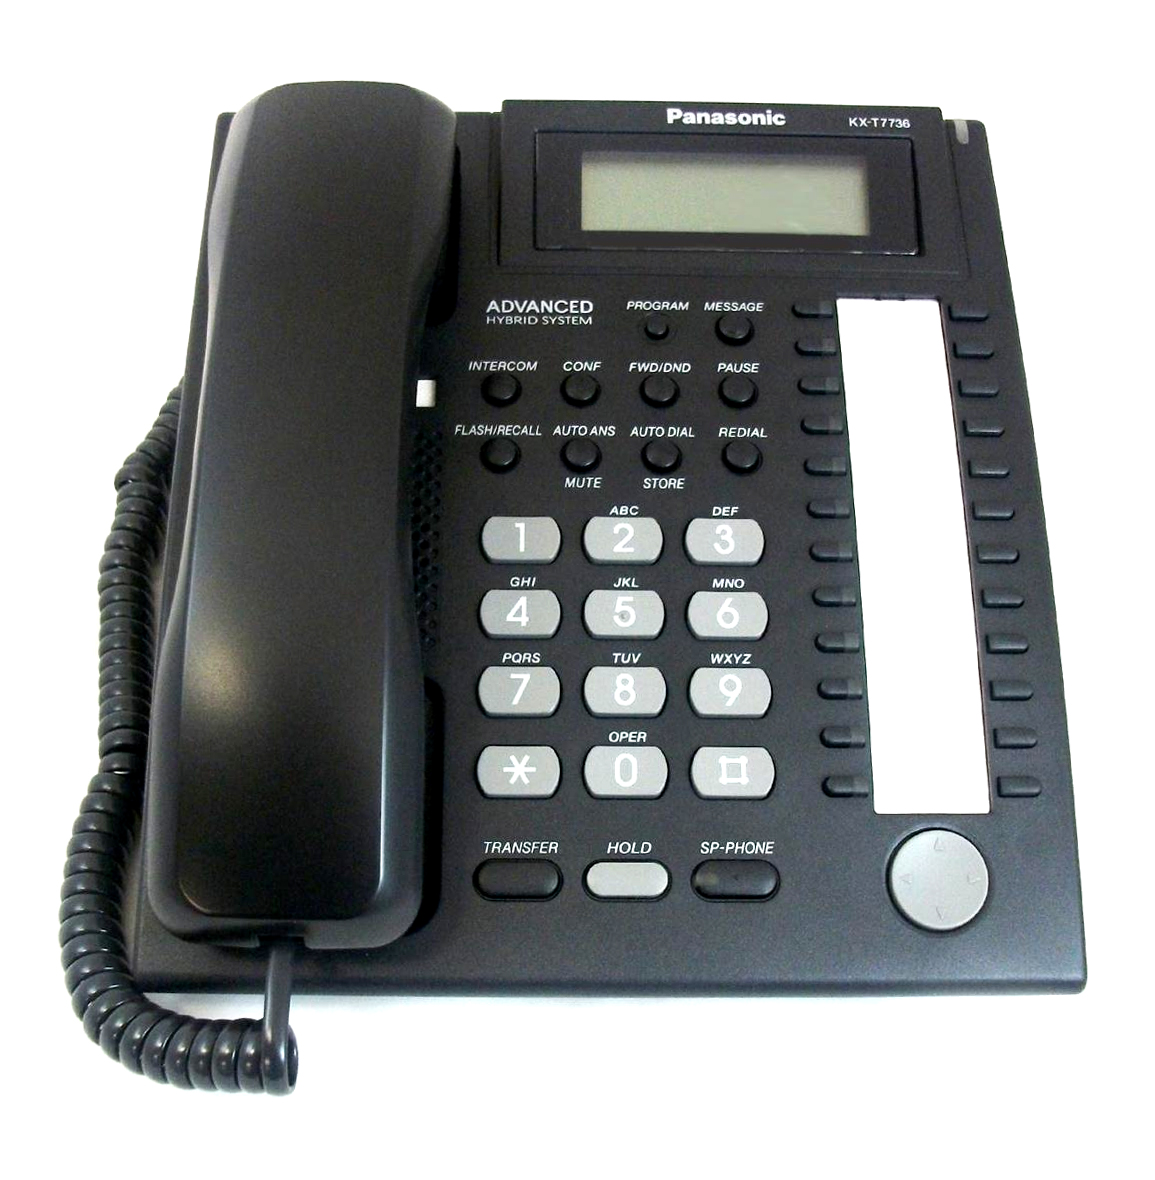 24 Button Speaker Phone 3 Line LCD Black by Panasonic Business Telephones